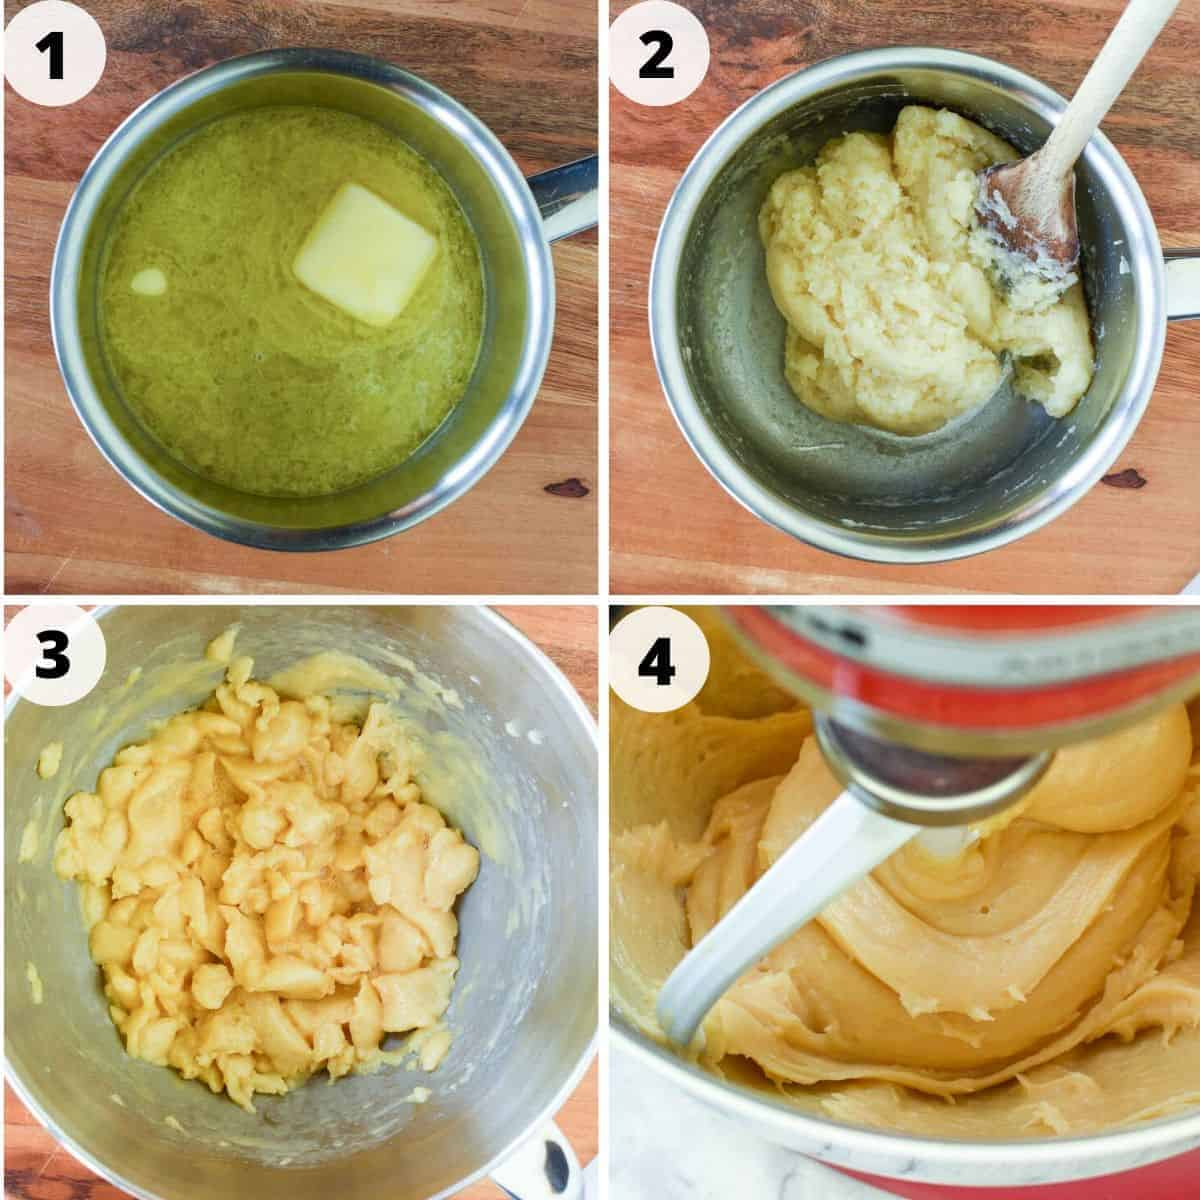 four image; image one water with partly melted butter; image 2 choux pastry dough in saucepan; image 3 choux pastry in stainless steel bowl; image four is close up of choux pastry in electic mixer